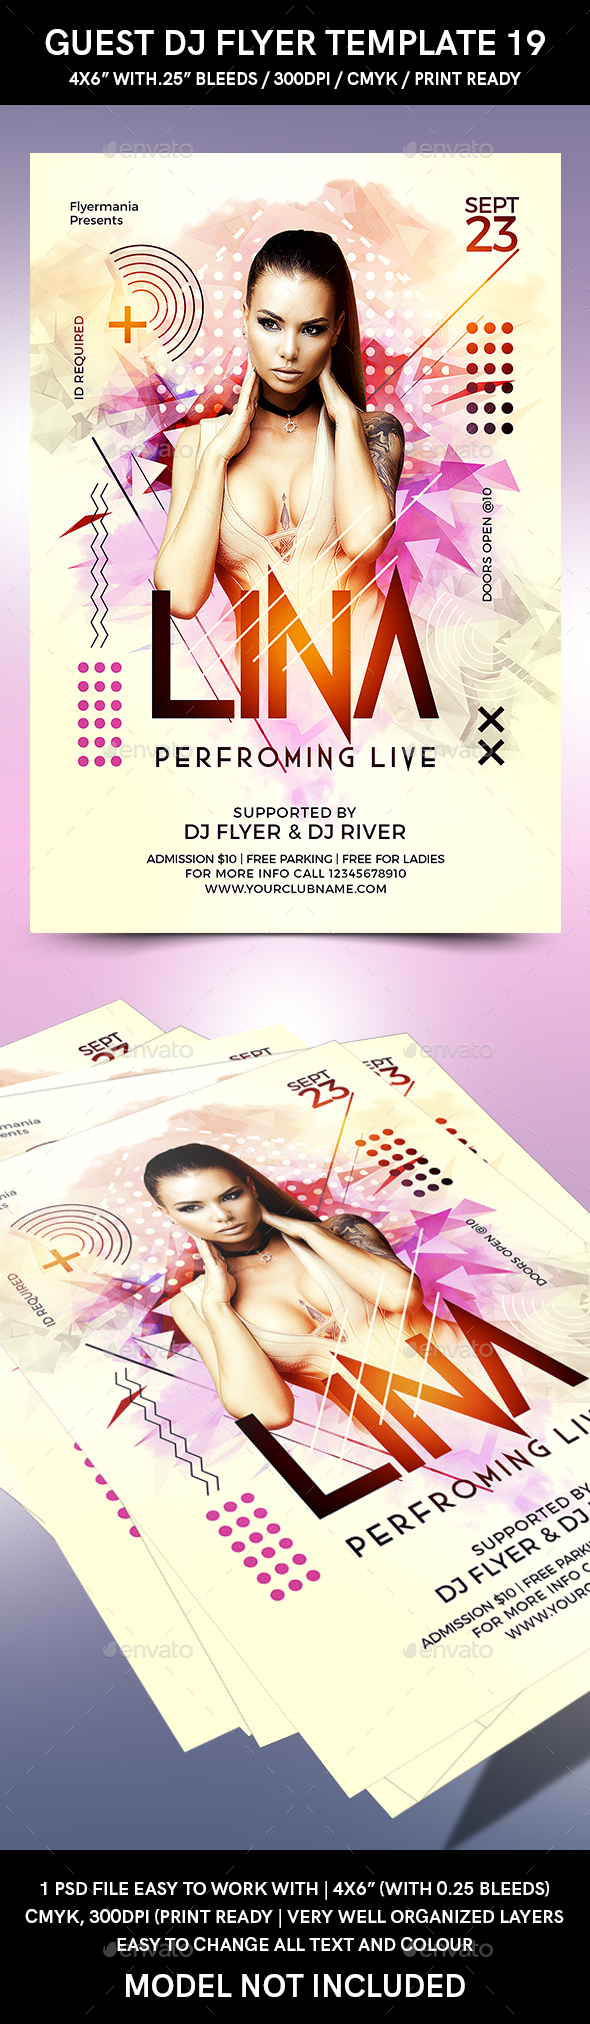 Guest DJ Flyer Template 19 - Flyers Print Templates